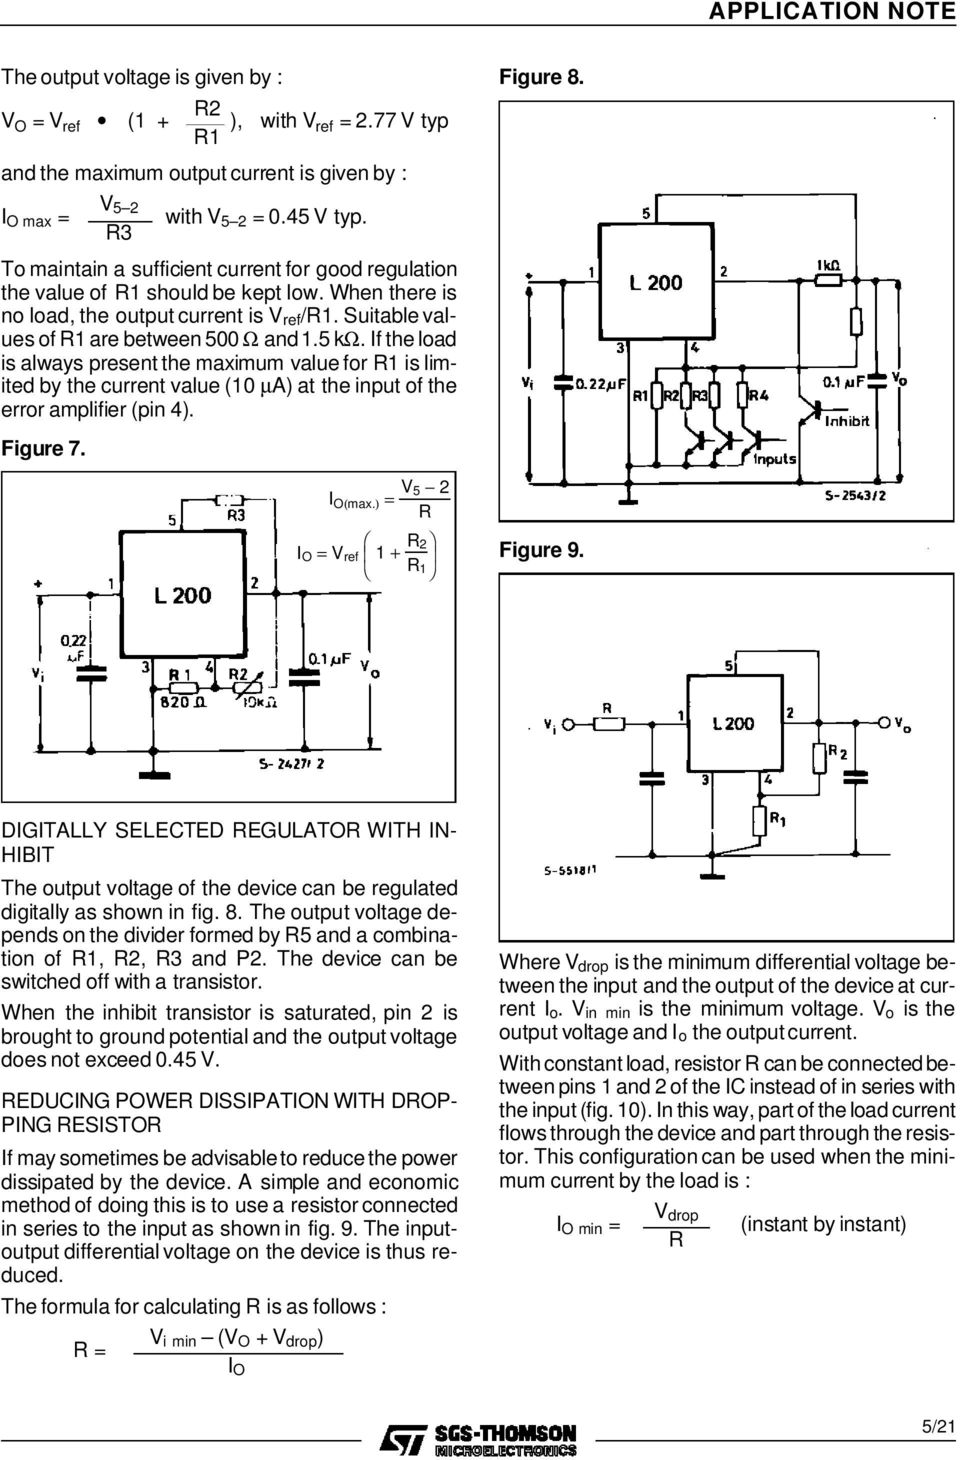 A Designer S Guide To The L200 Voltage Regulator Pdf Picture Of Versatile With Lm317 Iftheload Is Always Present Maximum Value For Limited By Current 10